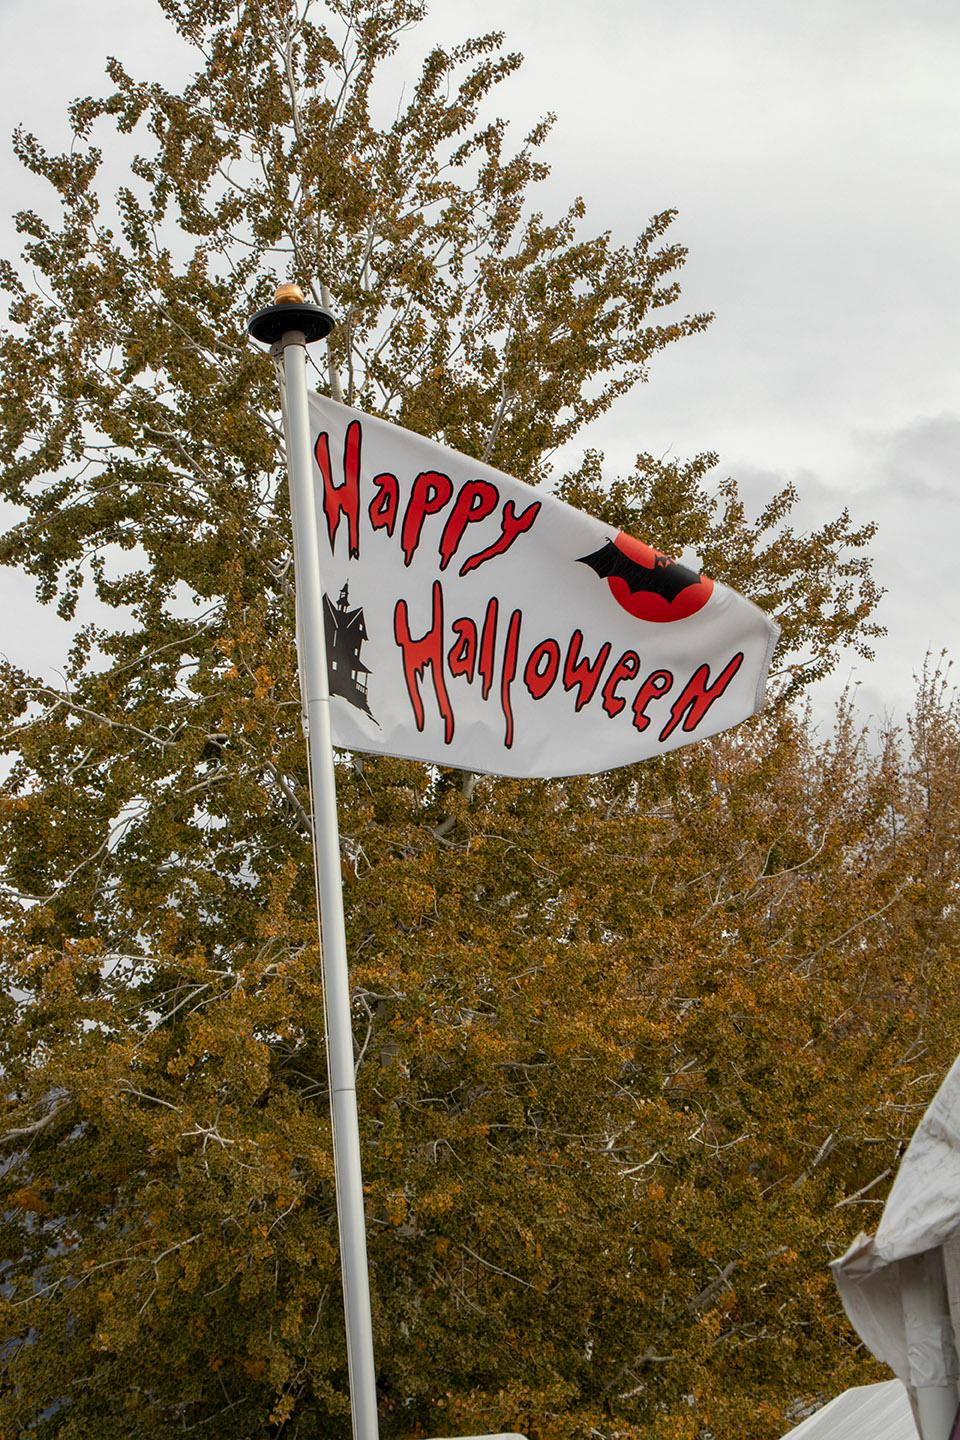 Orem is No. 1 city in America for best place to trick-or-treat (Photo: Larry D. Curtis / KUTV)